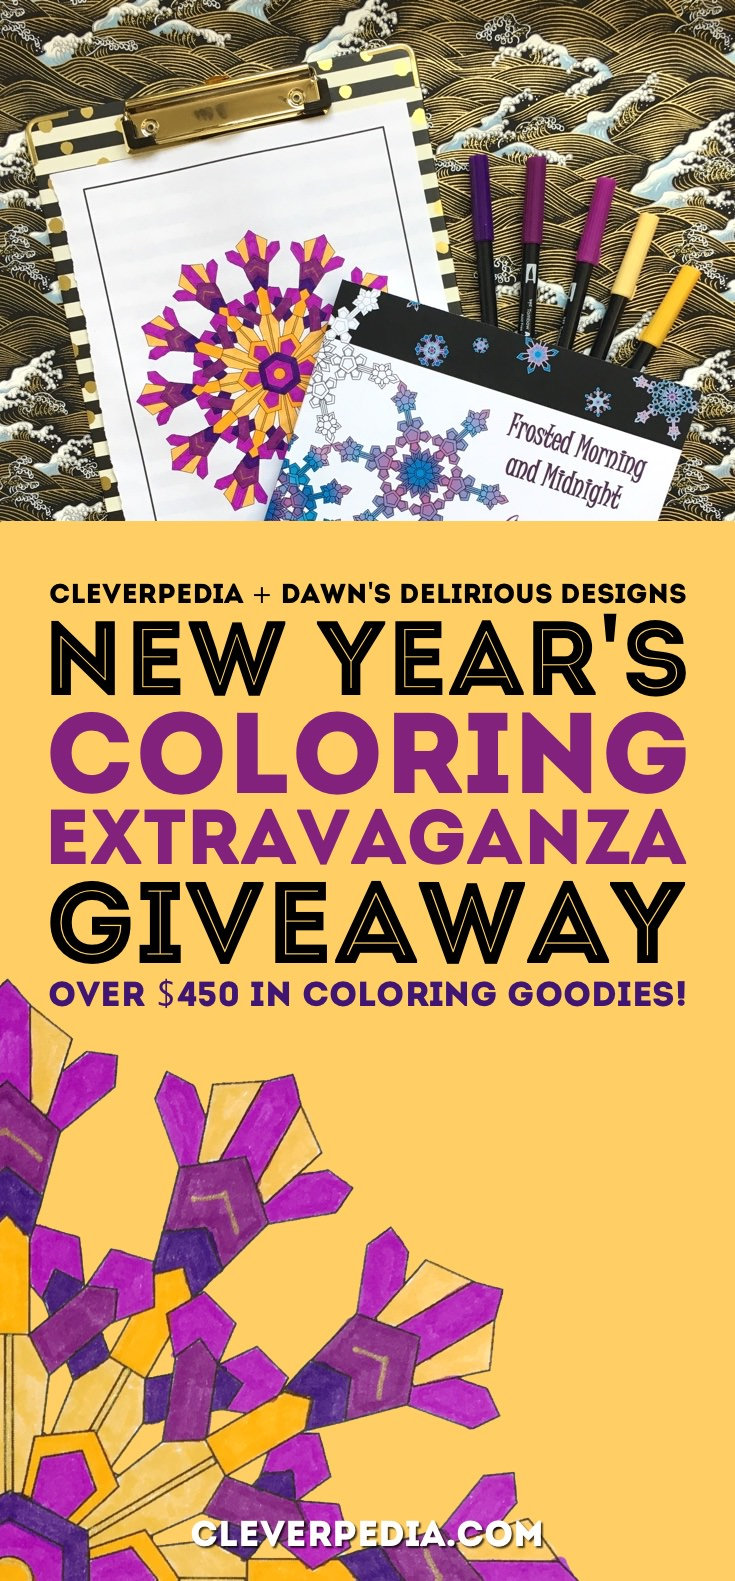 We're giving away over $450 in amazing coloring goodies, including this book and some great supplies from Prismacolor and others! There is just a limited time to enter, so enter right here!